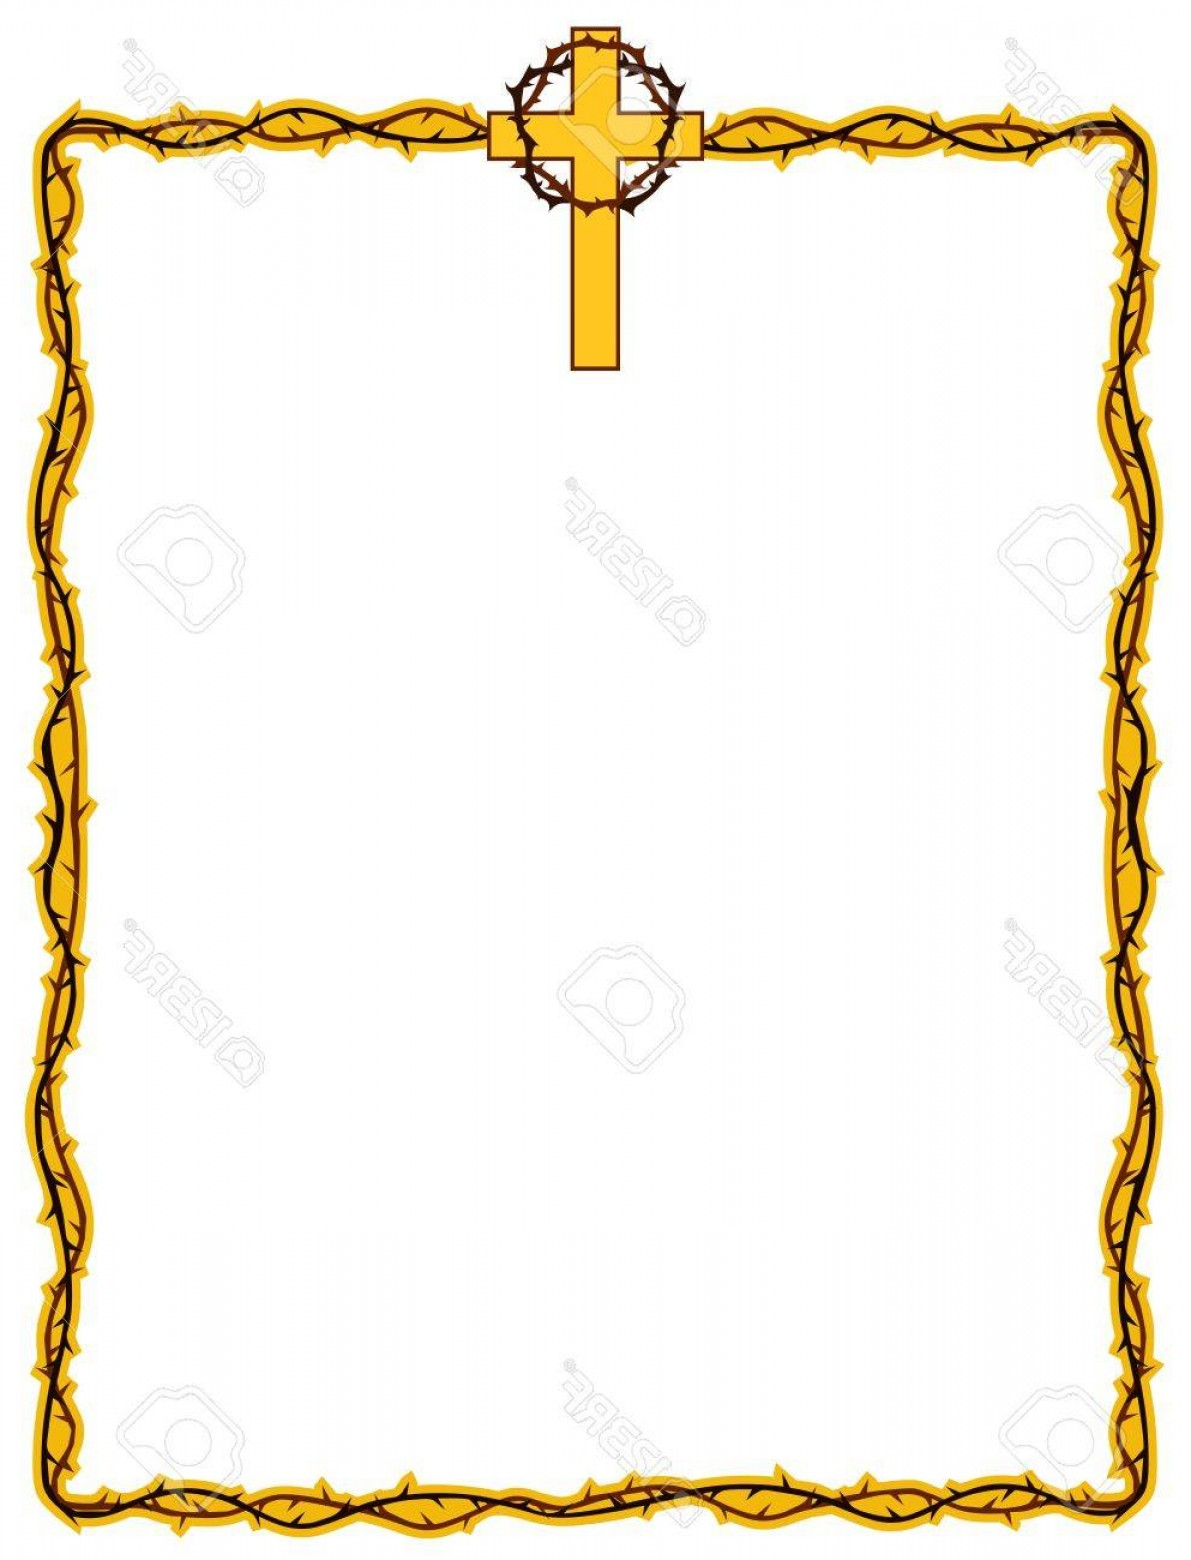 Christ clipart borders image free Religious Border Vectors | SOIDERGI image free